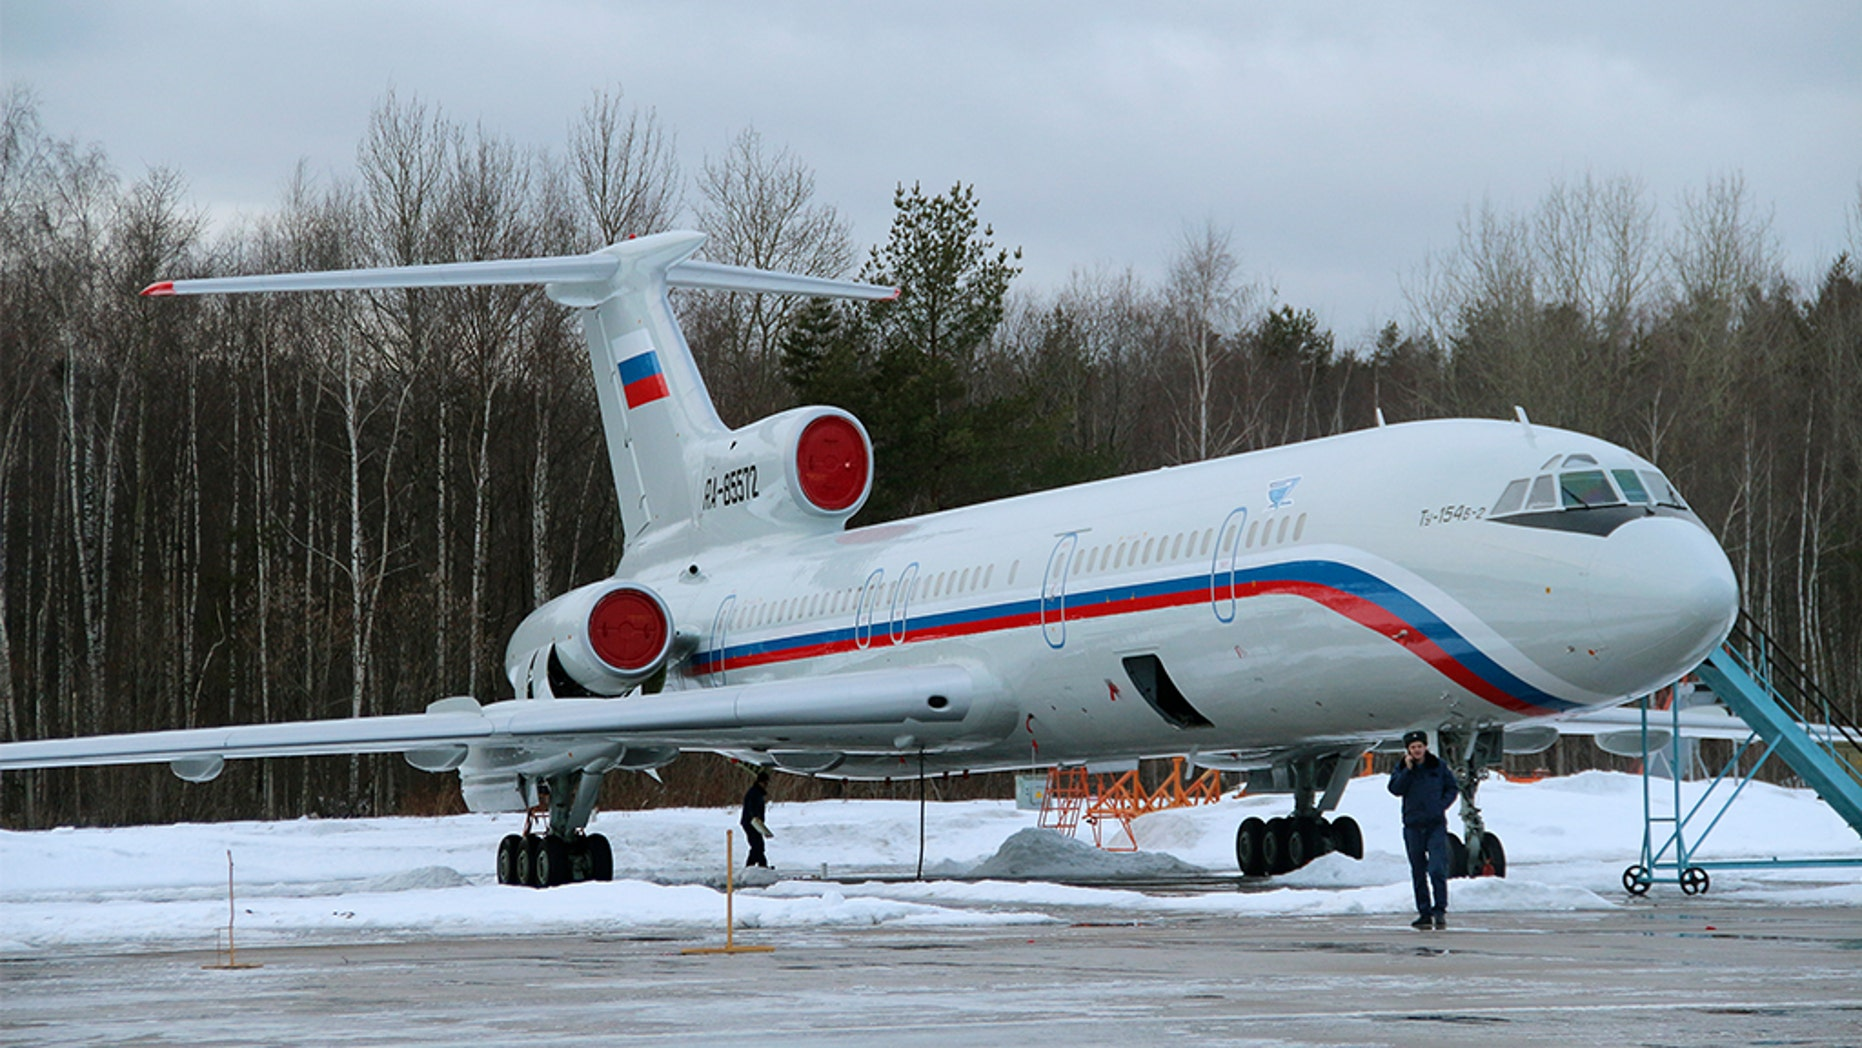 Russian reconnaissance aircraft will fly over parts of the United States this week through Saturday as part of obligations for the Treaty on Open Skies, U.S. officials said. (REUTERS/Dmitry Petrochenko)